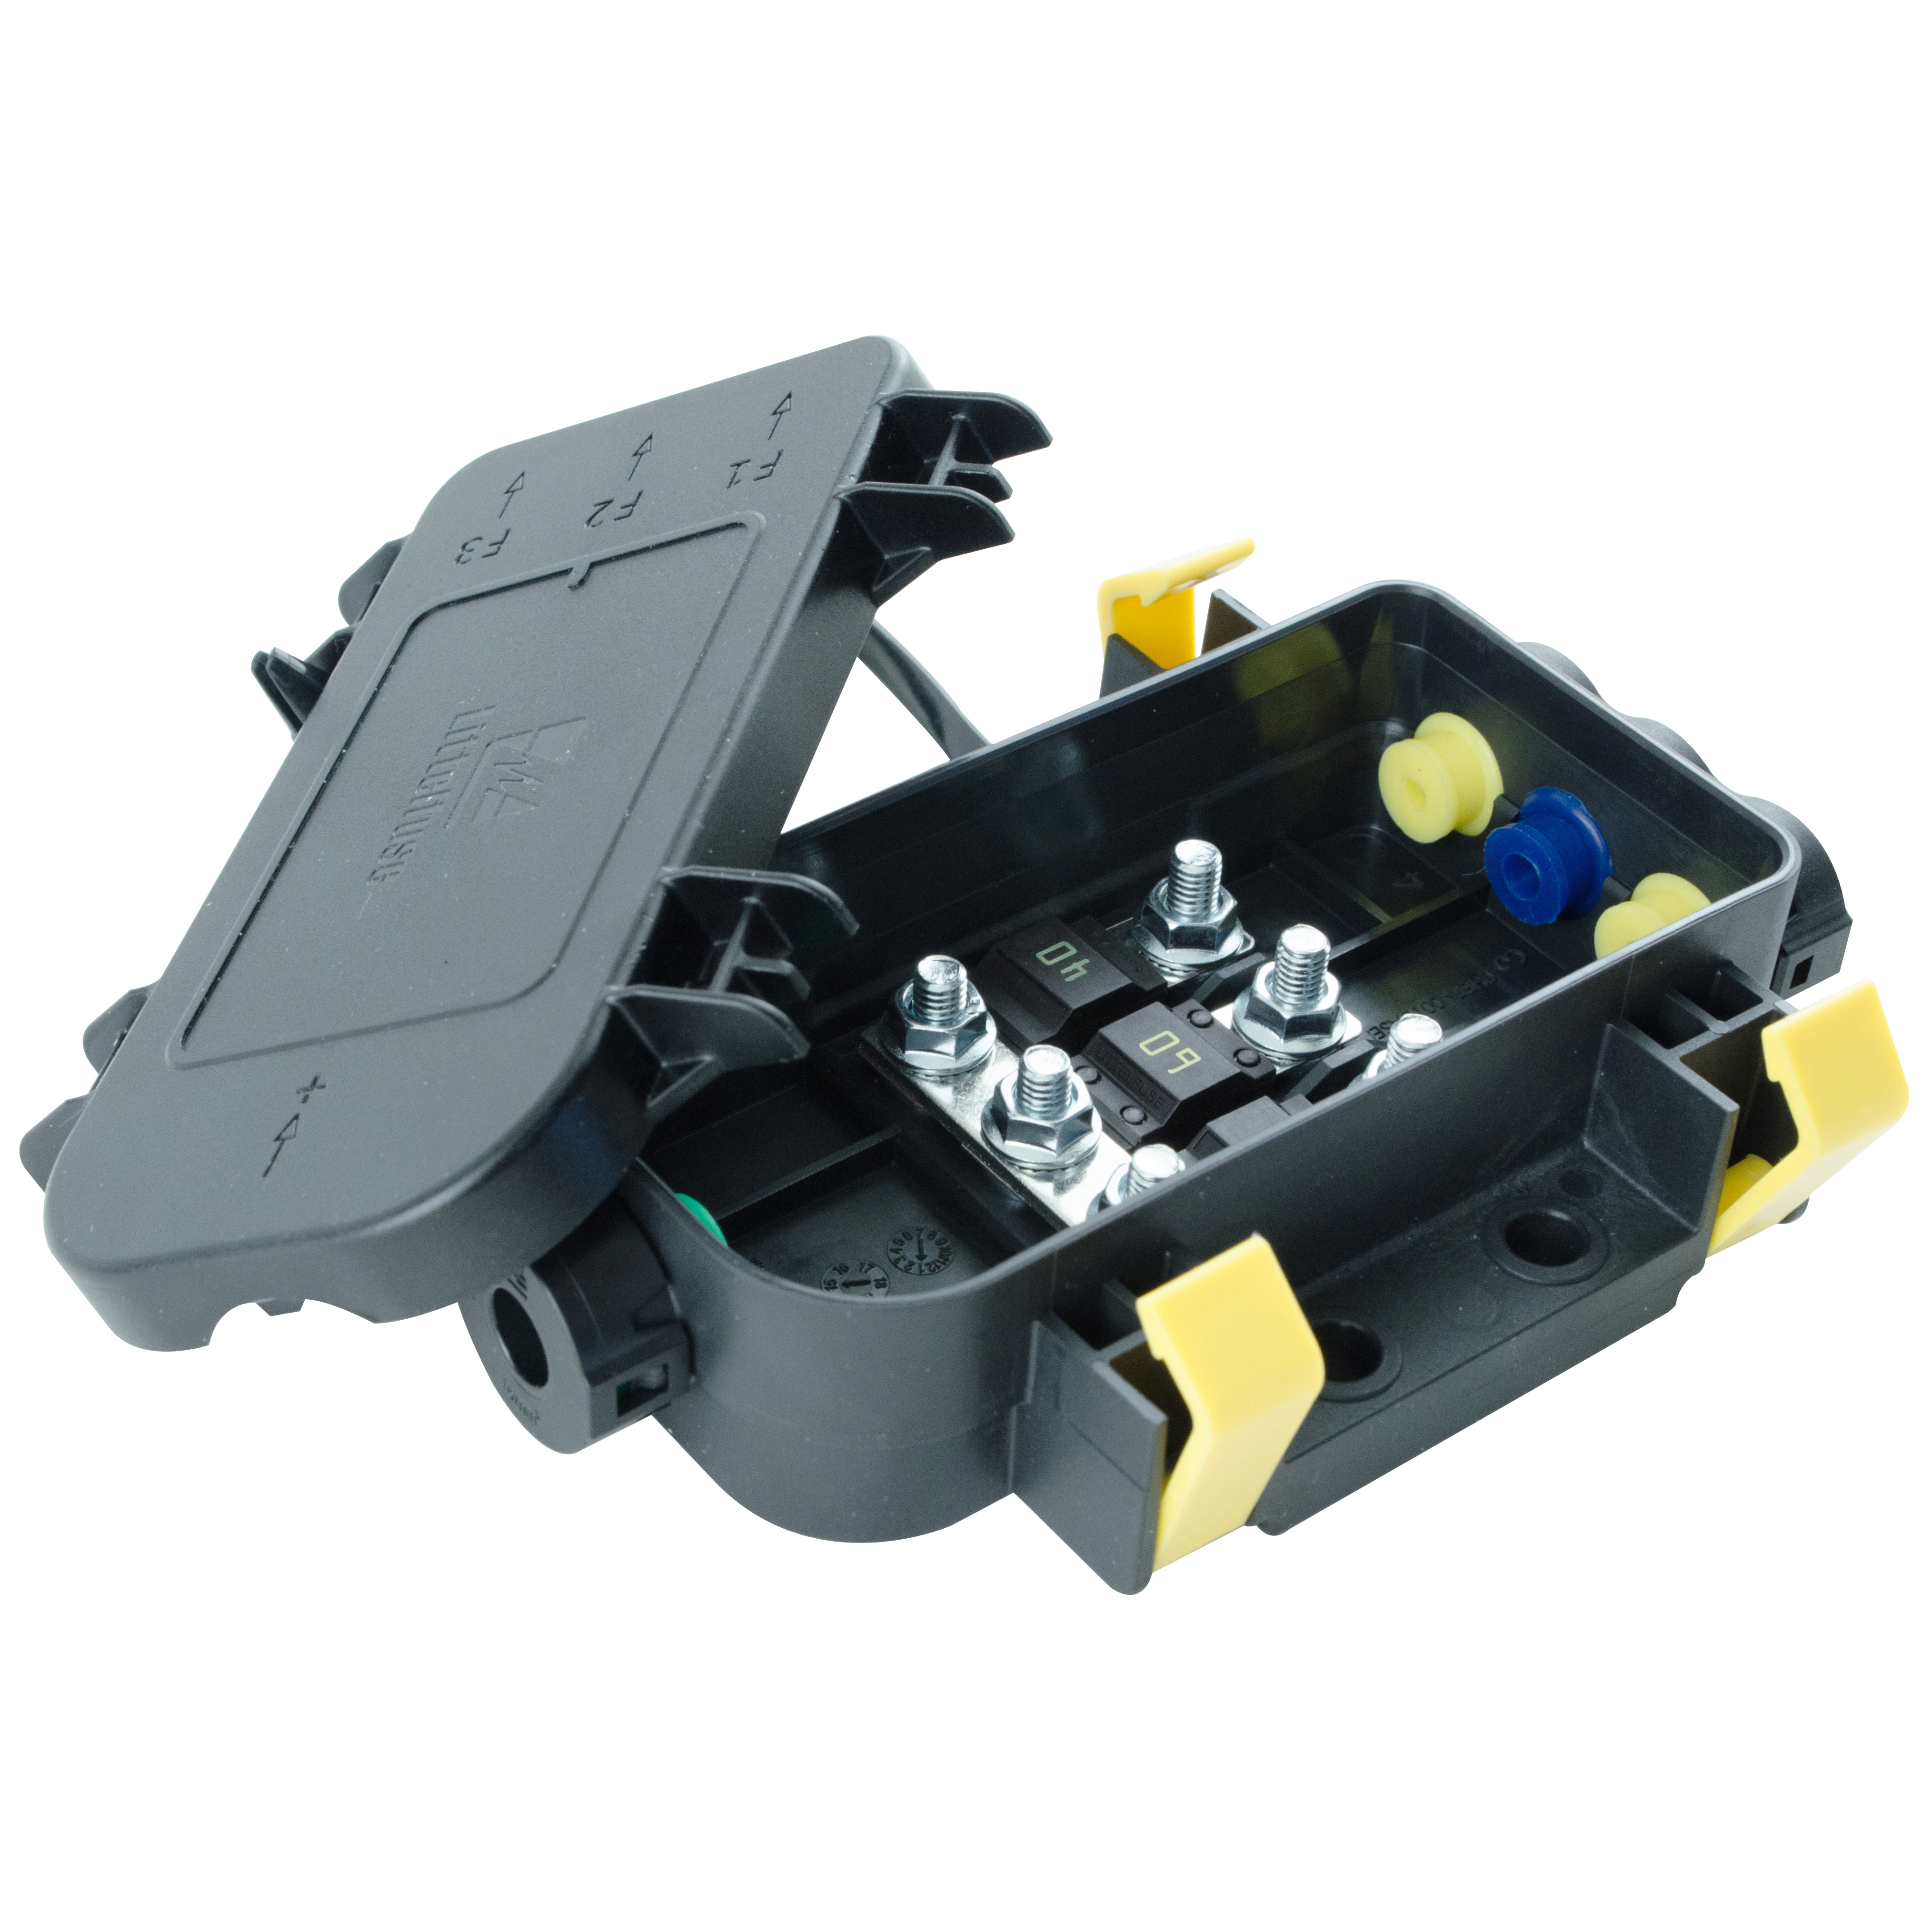 hight resolution of car fuse box modular wiring diagram g9 car fuse box diagram car fuse box modular